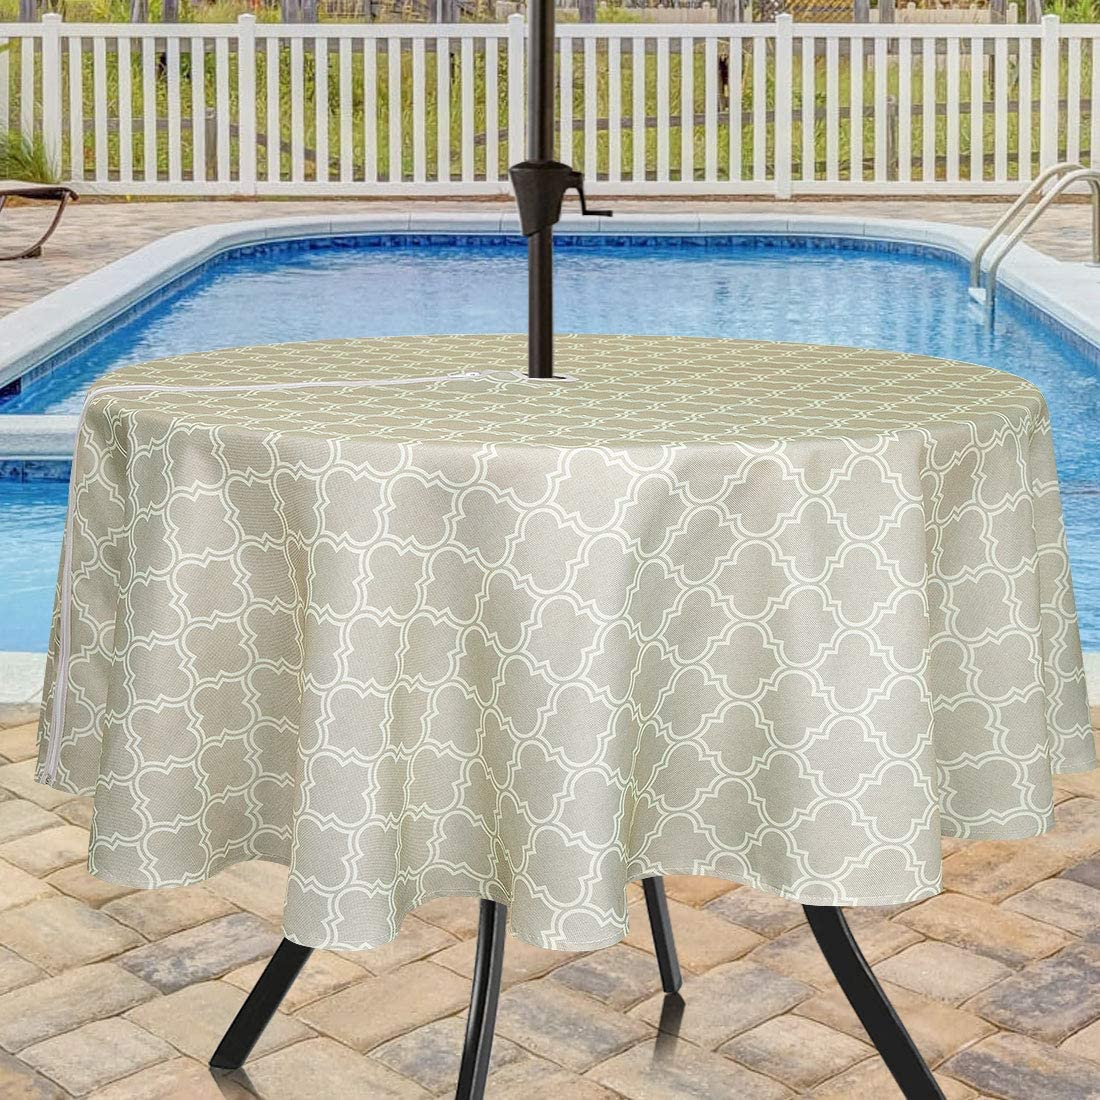 Eforcurtain Geometric Floral Print Umbrella Tablecloths with Zipper for Outdoor Use for Round Tables Tables Durable Waterproof Fabric Table Cover, 60 Inch, Light Yellow